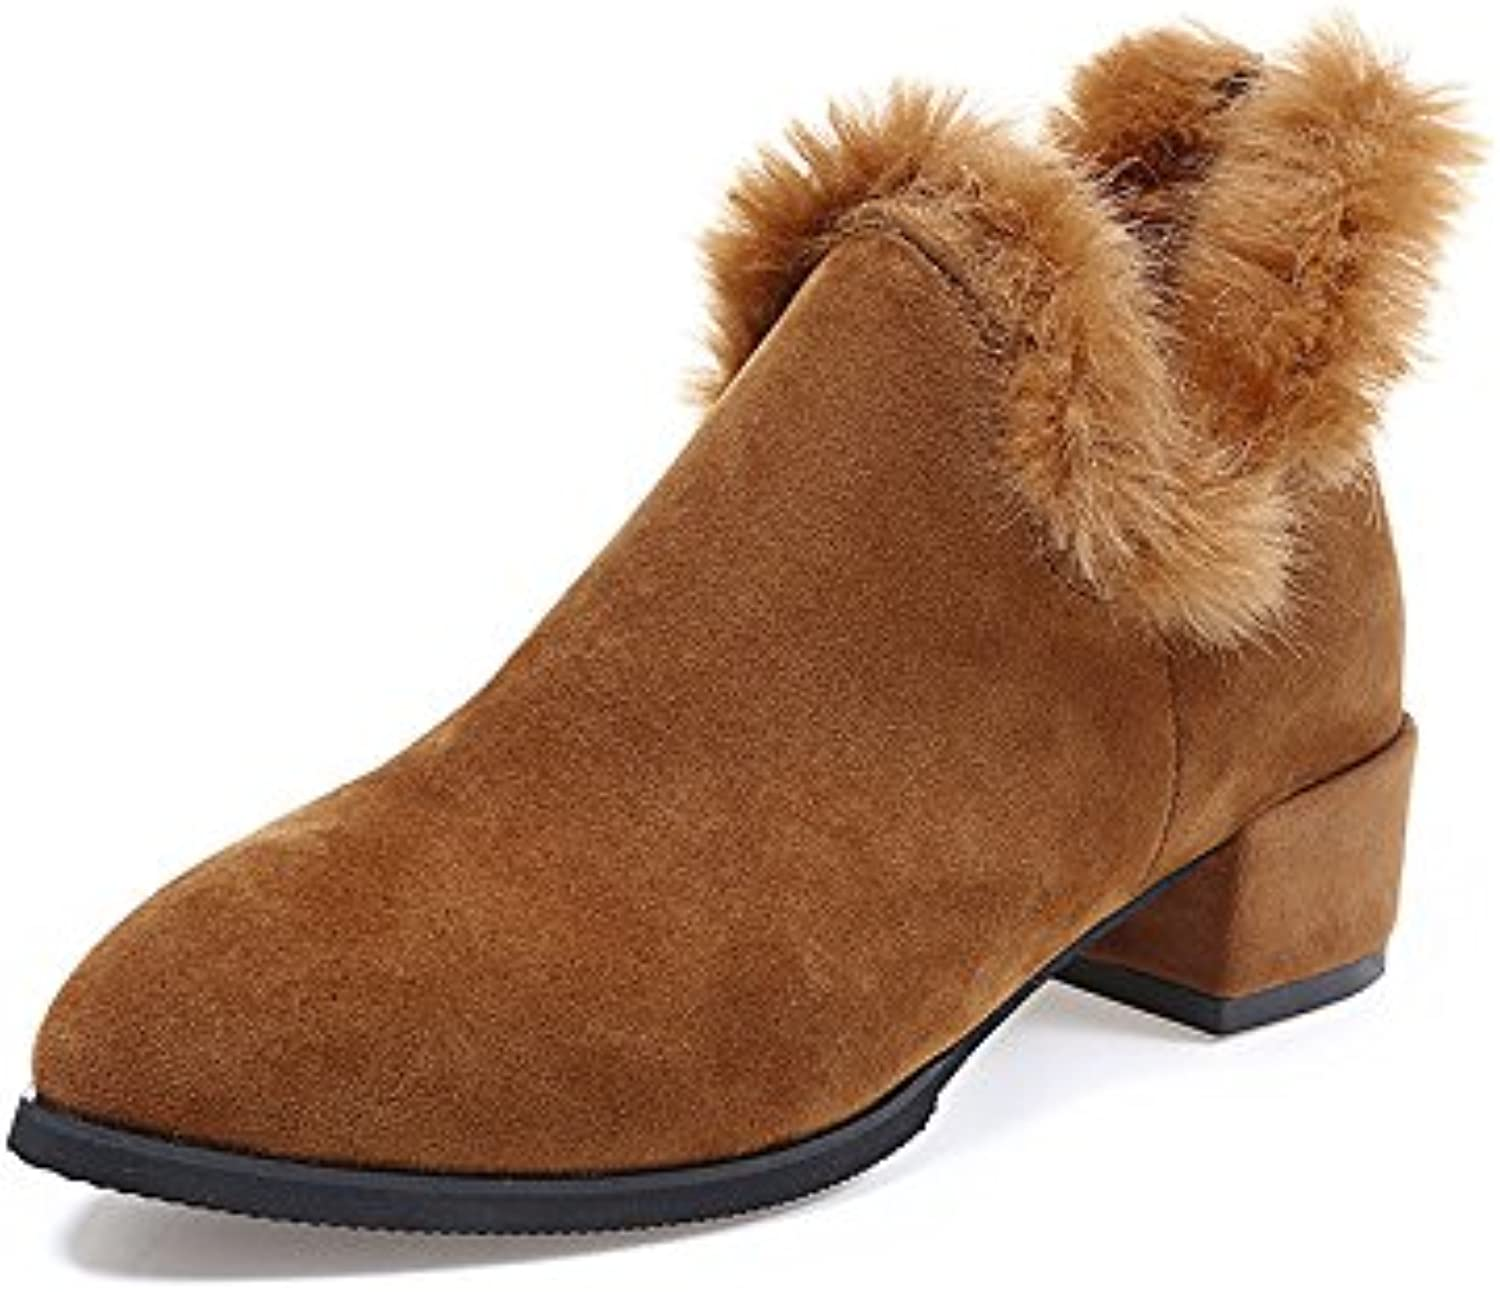 WYMBS Women's shoes Female Boots Autumn Winter Pointed Rough England Suede Plush Zipper,Brown,38